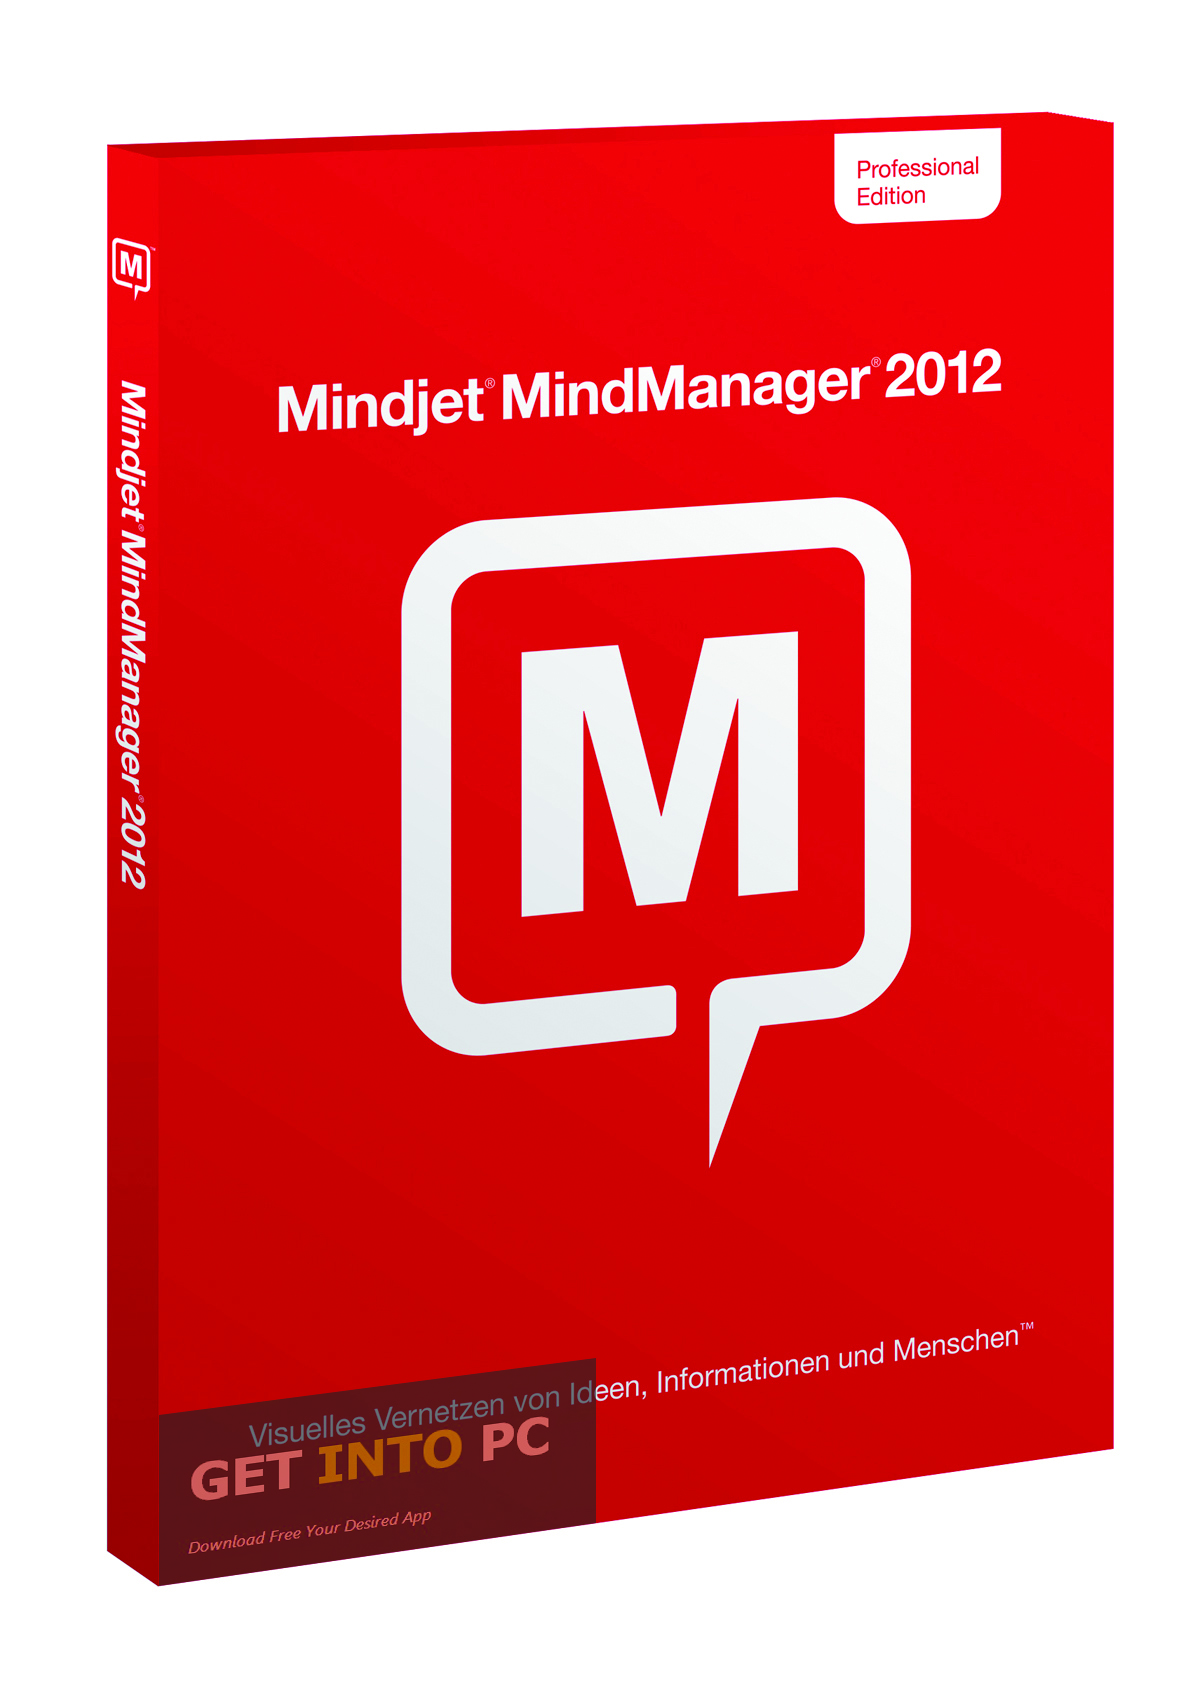 Mindjet MindManager Download For Windows